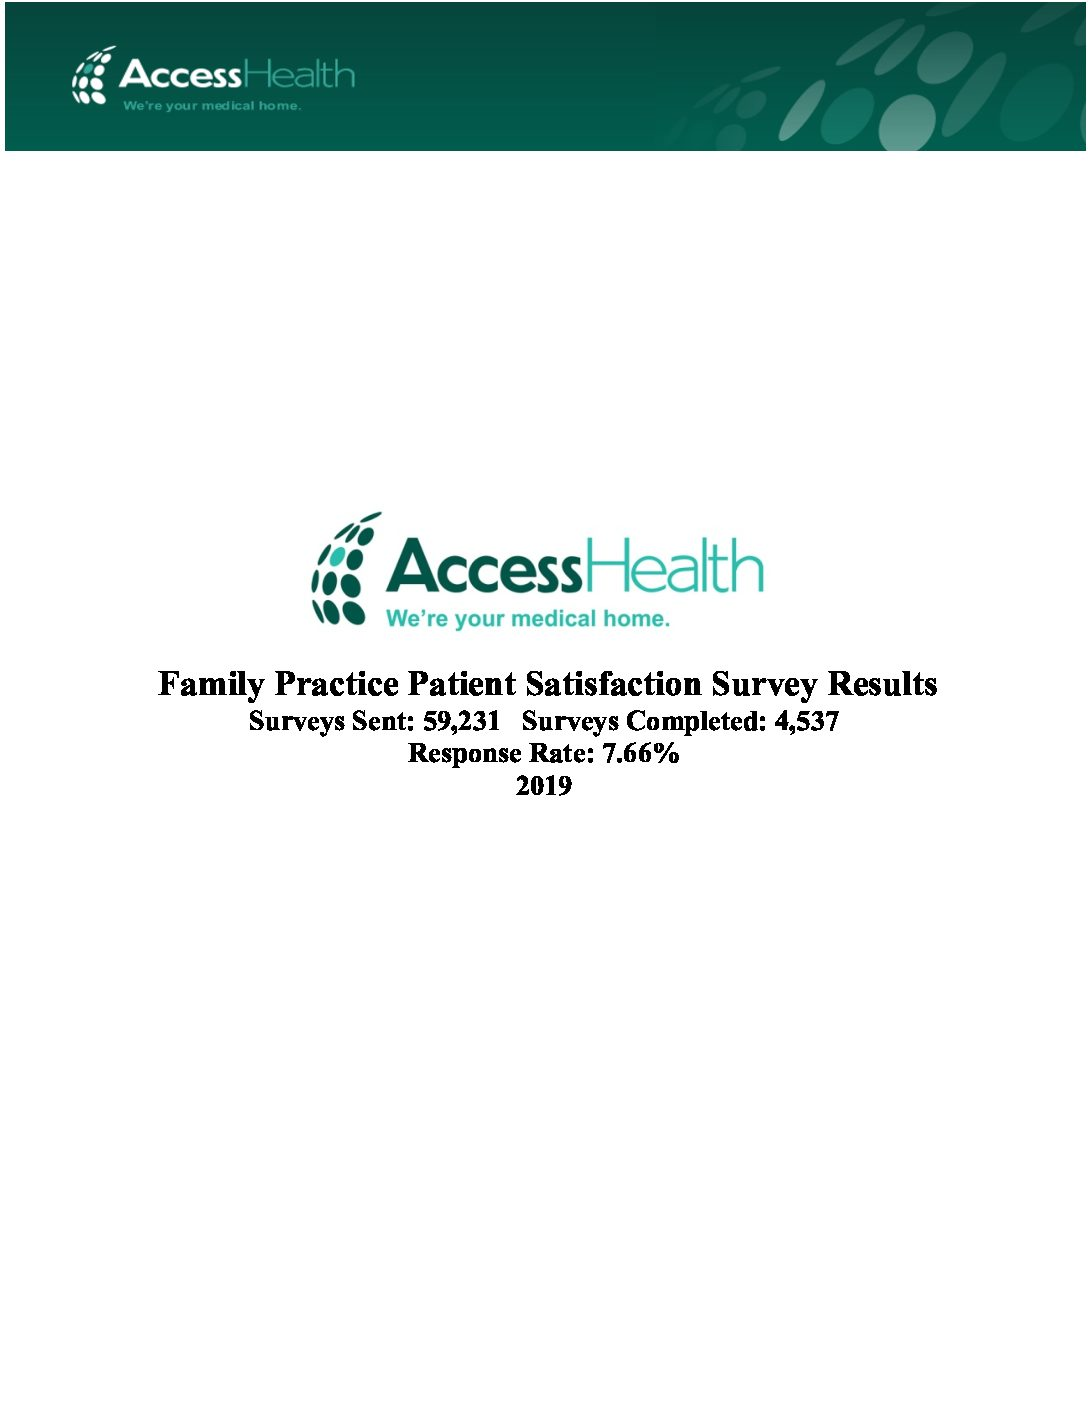 2019 Family Practice Patient Satisfaction Survey Results